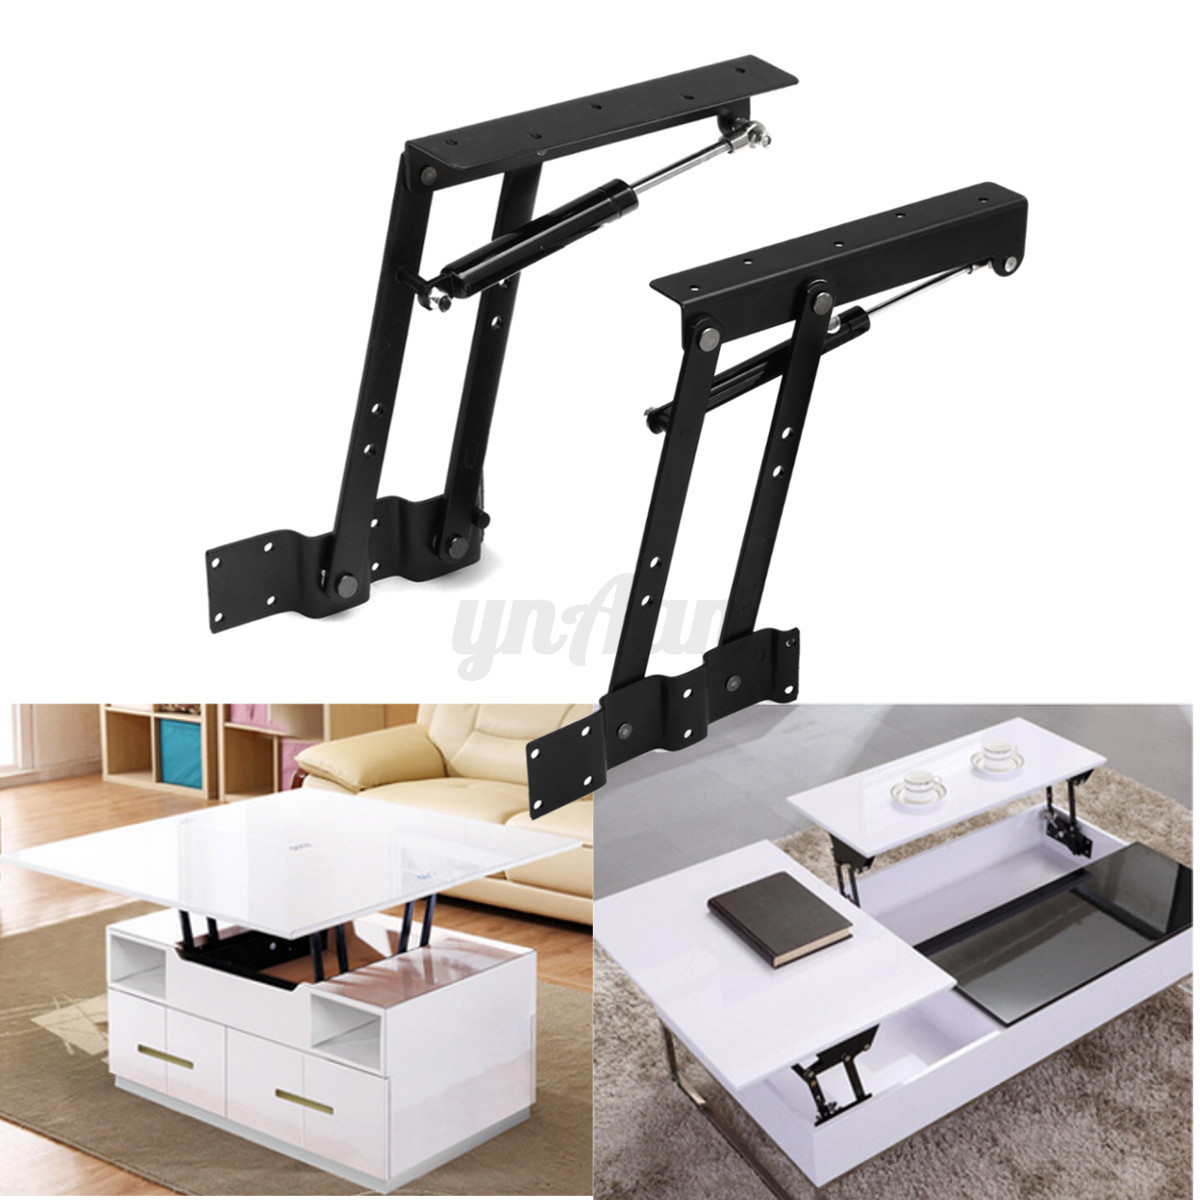 1pair Diy Lift Up Top Coffee Table Sofa Bed Furniture Mechanism Hinge Hardware Ebay